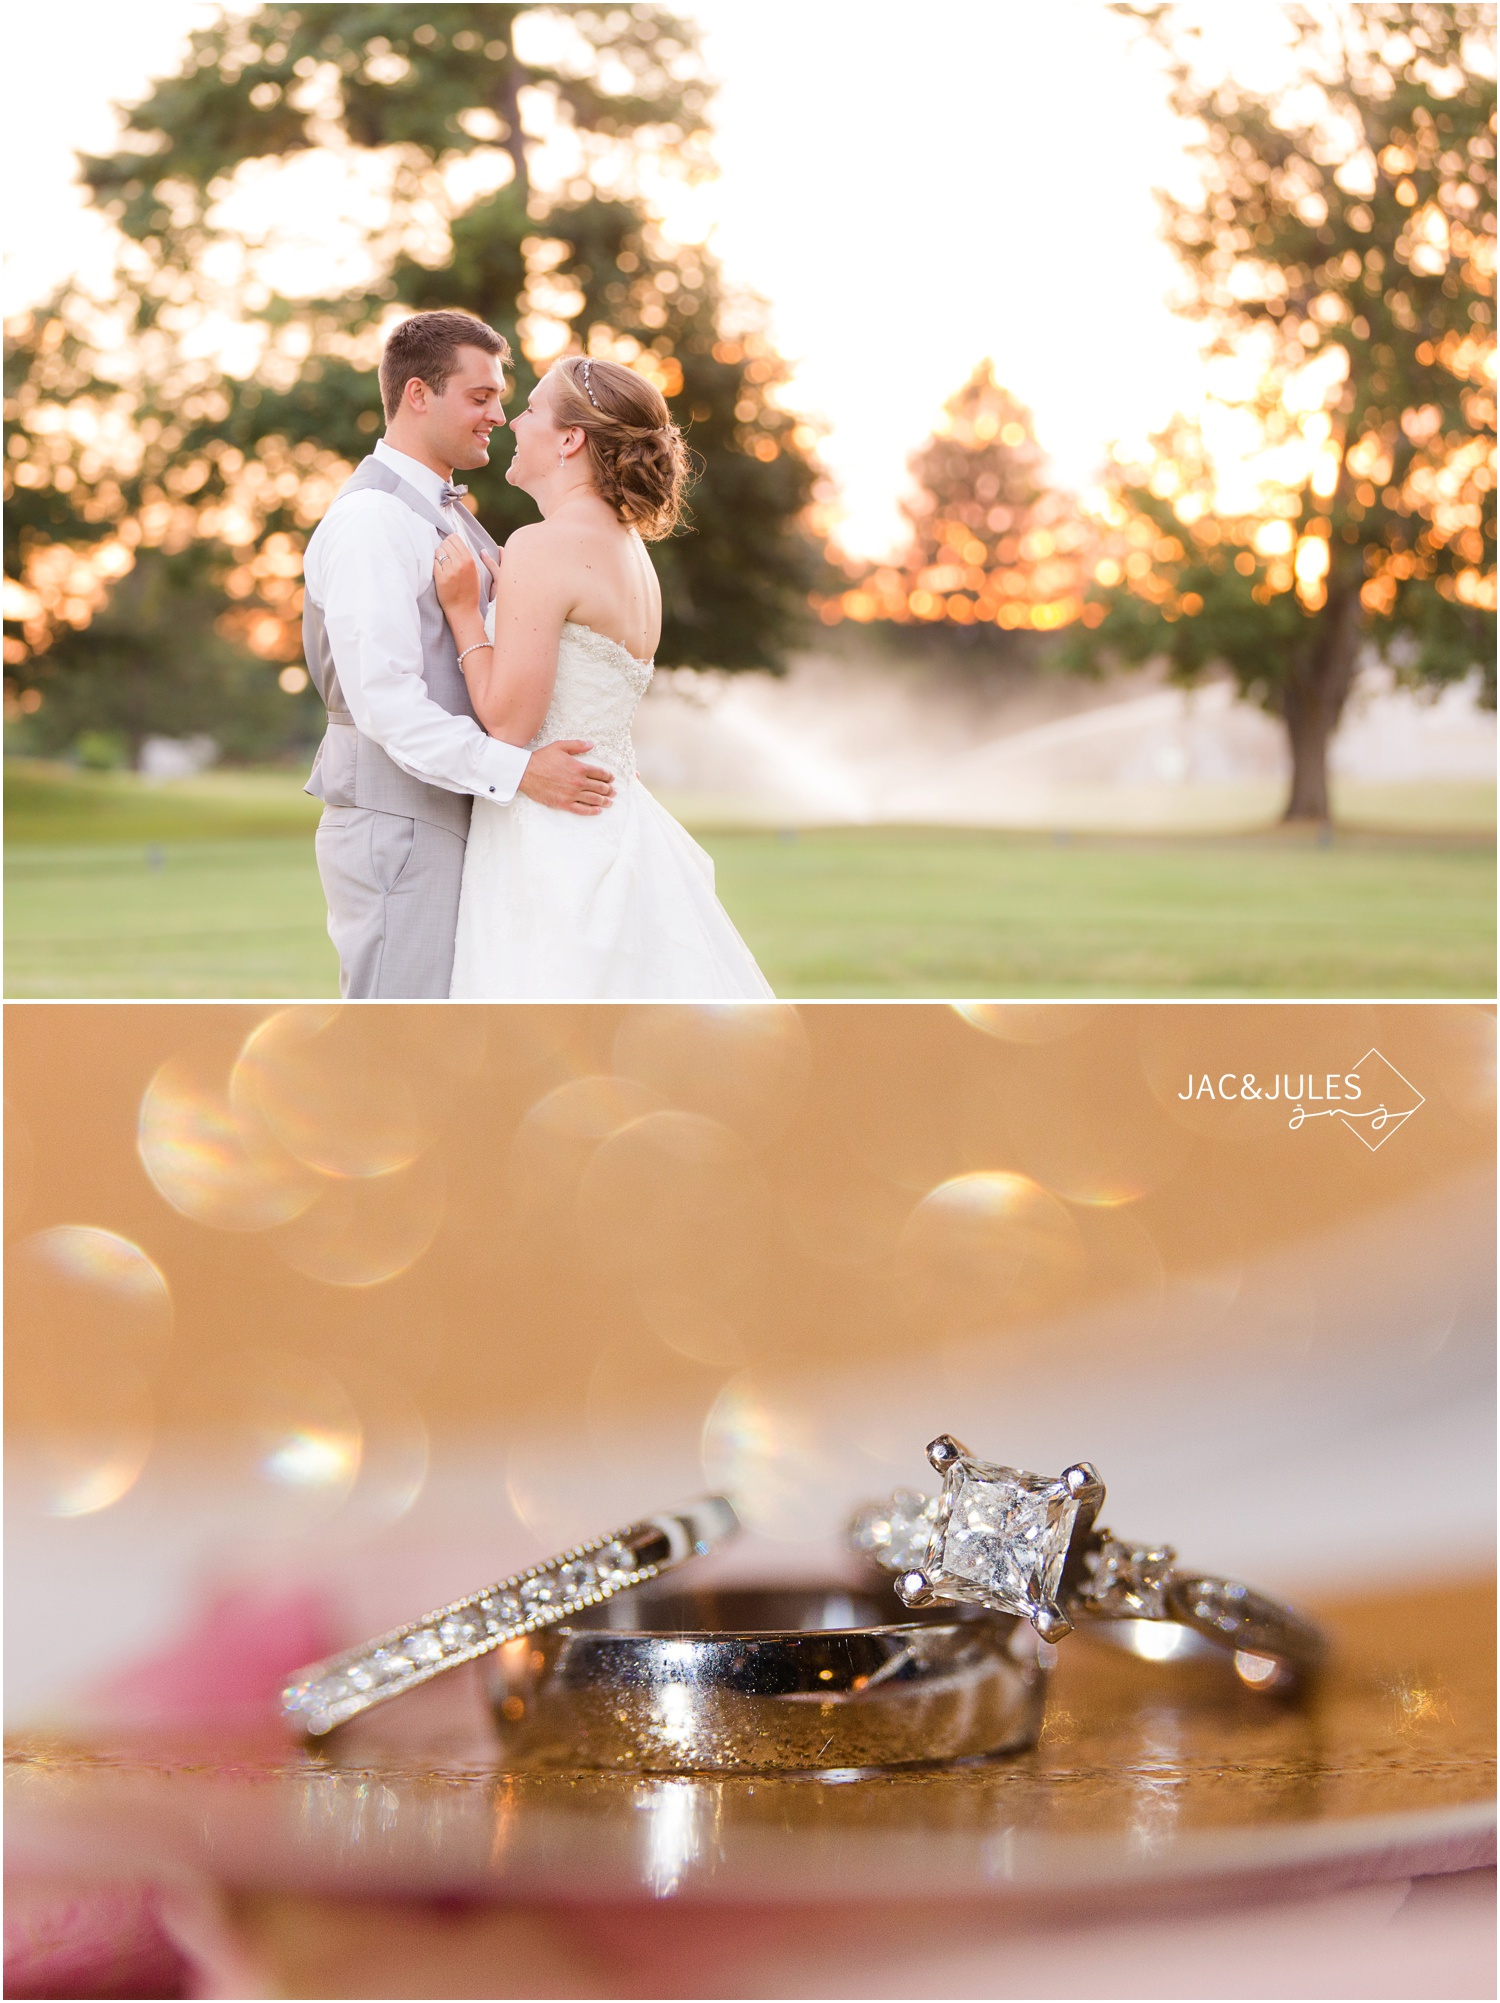 sunset and wedding rings at forsgate country club in Monroe, NJ.